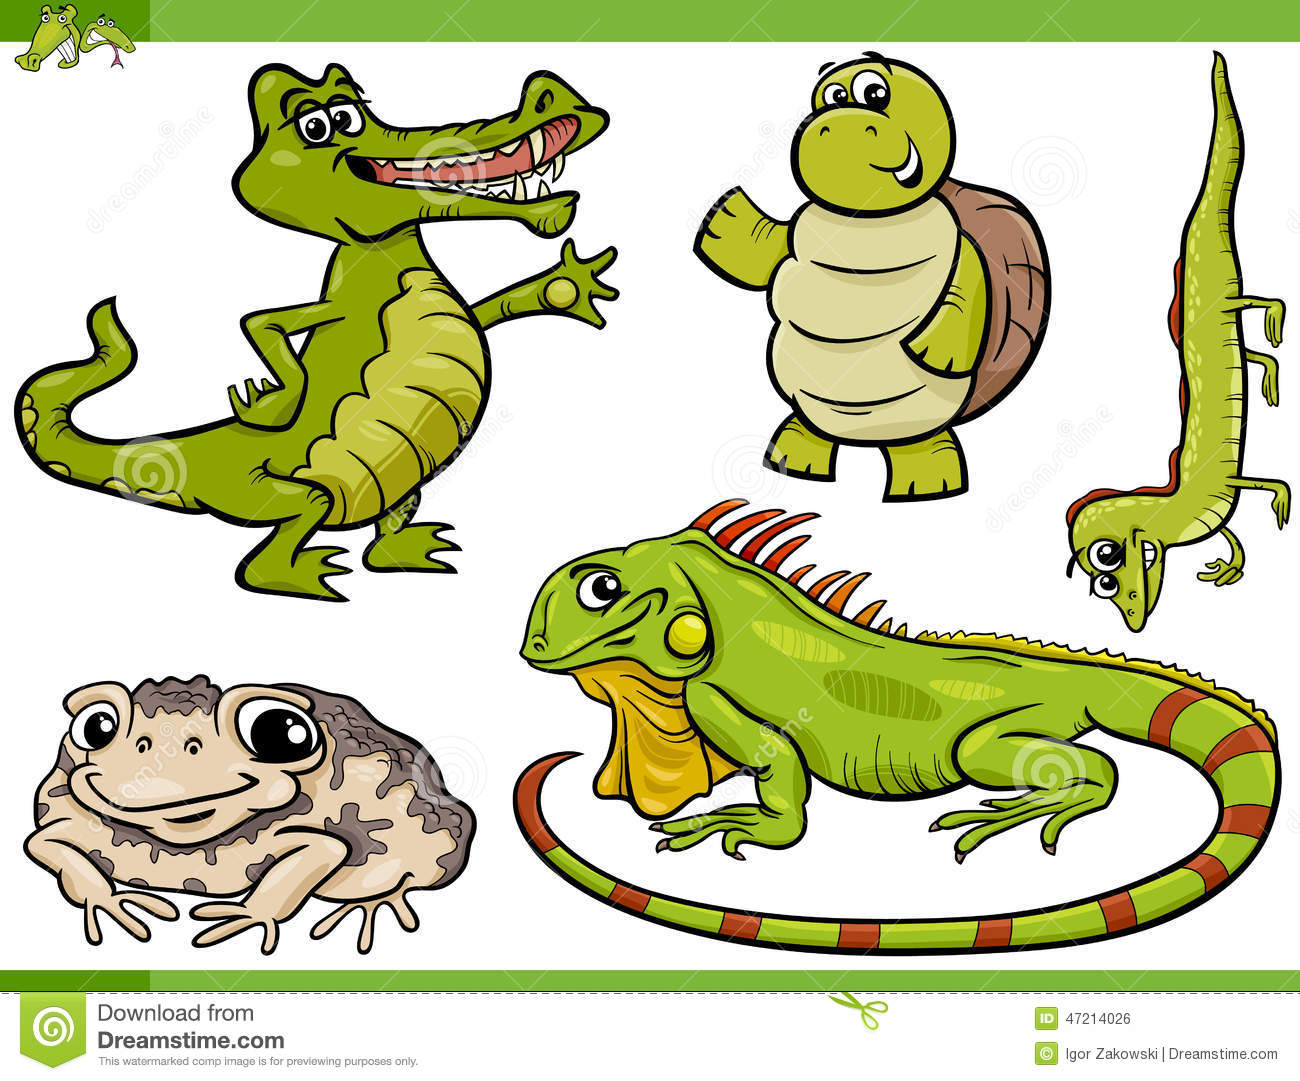 Reptiles clipart - Clipground